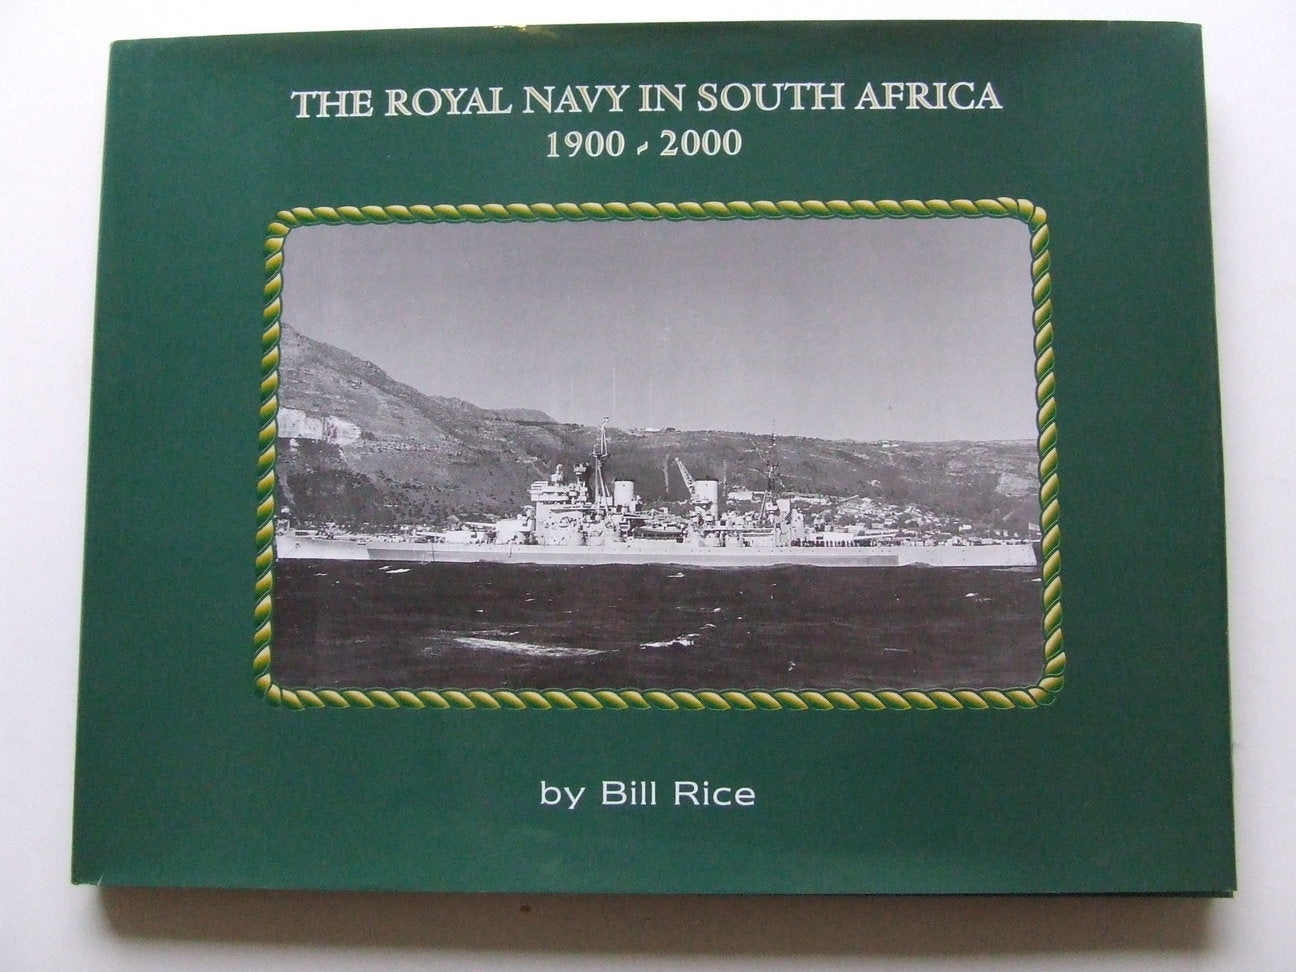 The Royal Navy in South Africa 1900 - 2000